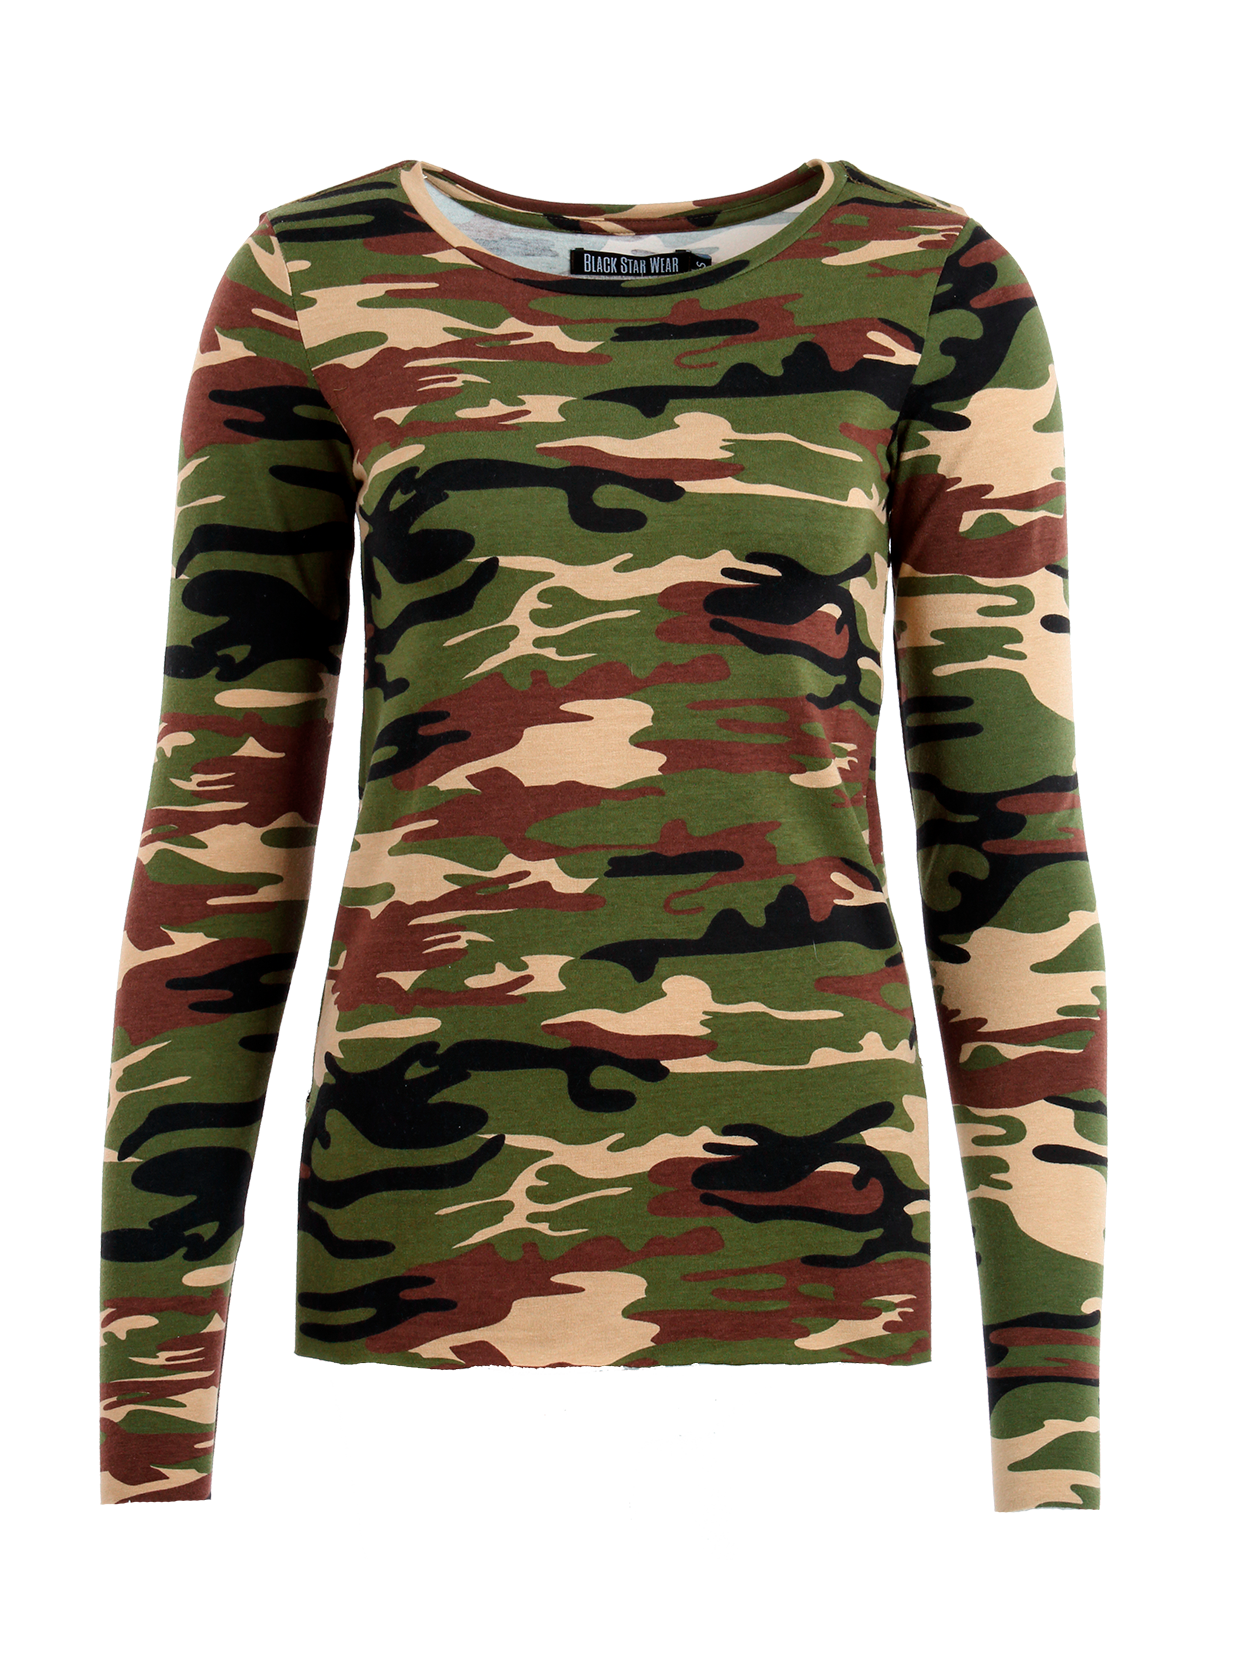 Womens long sleeve t-shirt Green Camo PatchWomens long sleeve t-shirt by Black Star Wear. Slim fit, o-neck, long sleeves, raw cut, small cuts on sides. Patch BS13 on the back. Natural cotton (95%), lycra (5%). Avaliable in camouflage.<br><br>size: S<br>color: Camouflage<br>gender: female